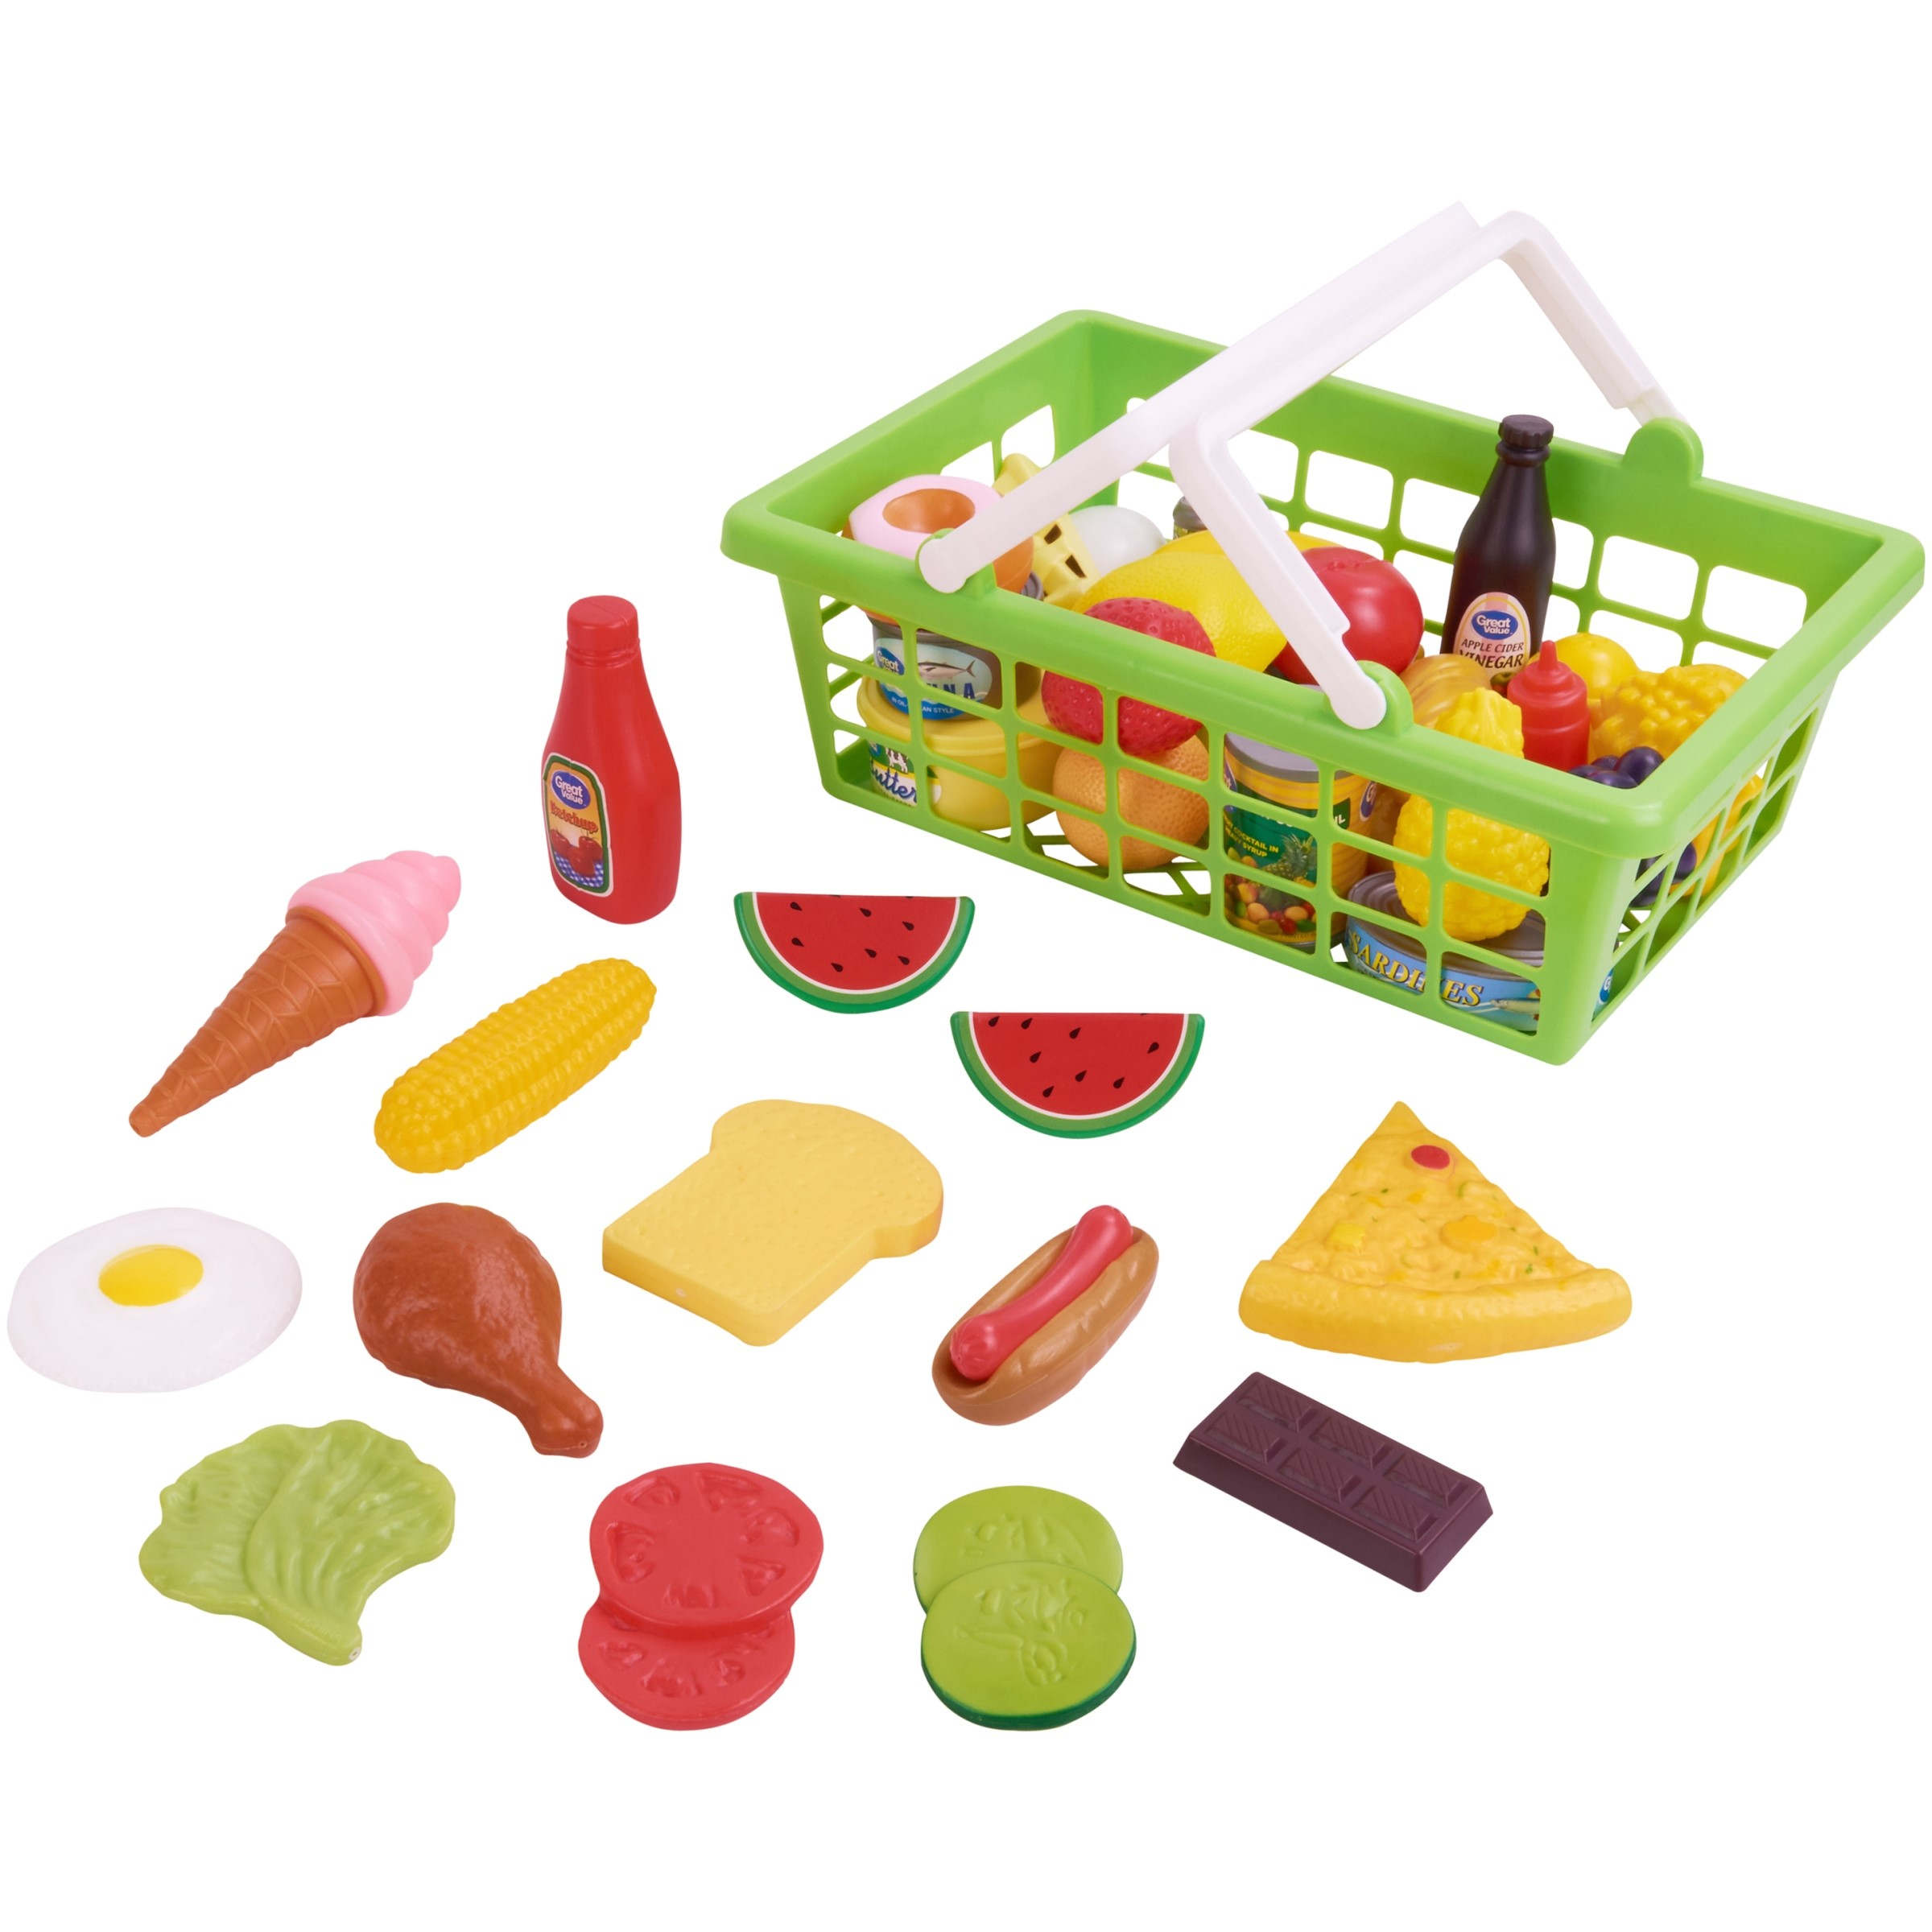 Kid Connection 100 Piece Play Food Set Designed For Kids Age 3 And Up